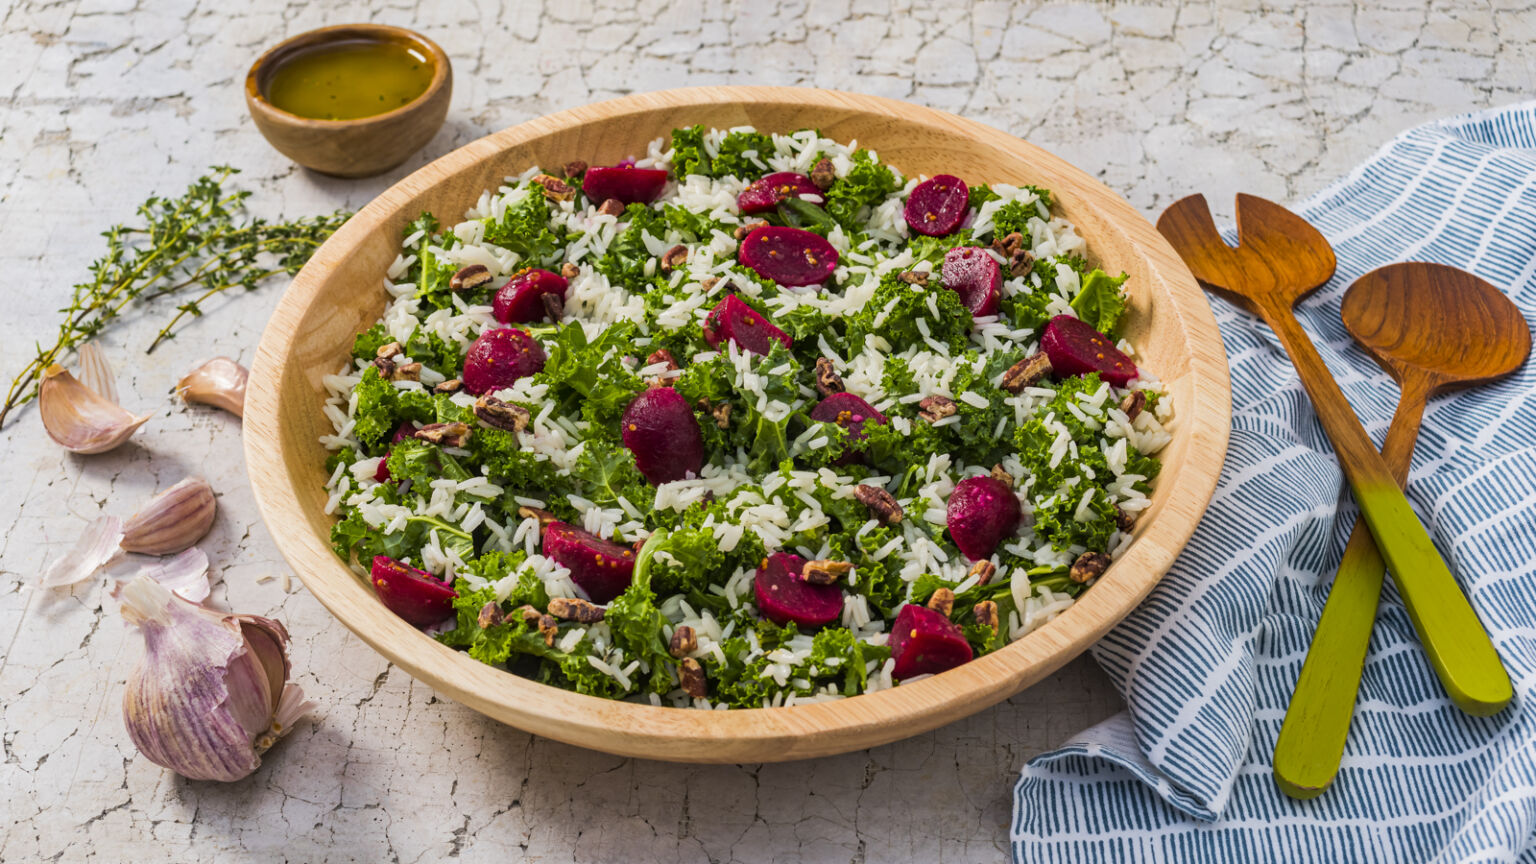 Beet, Kale and Jasmine Rice Salad with Cider Dressing